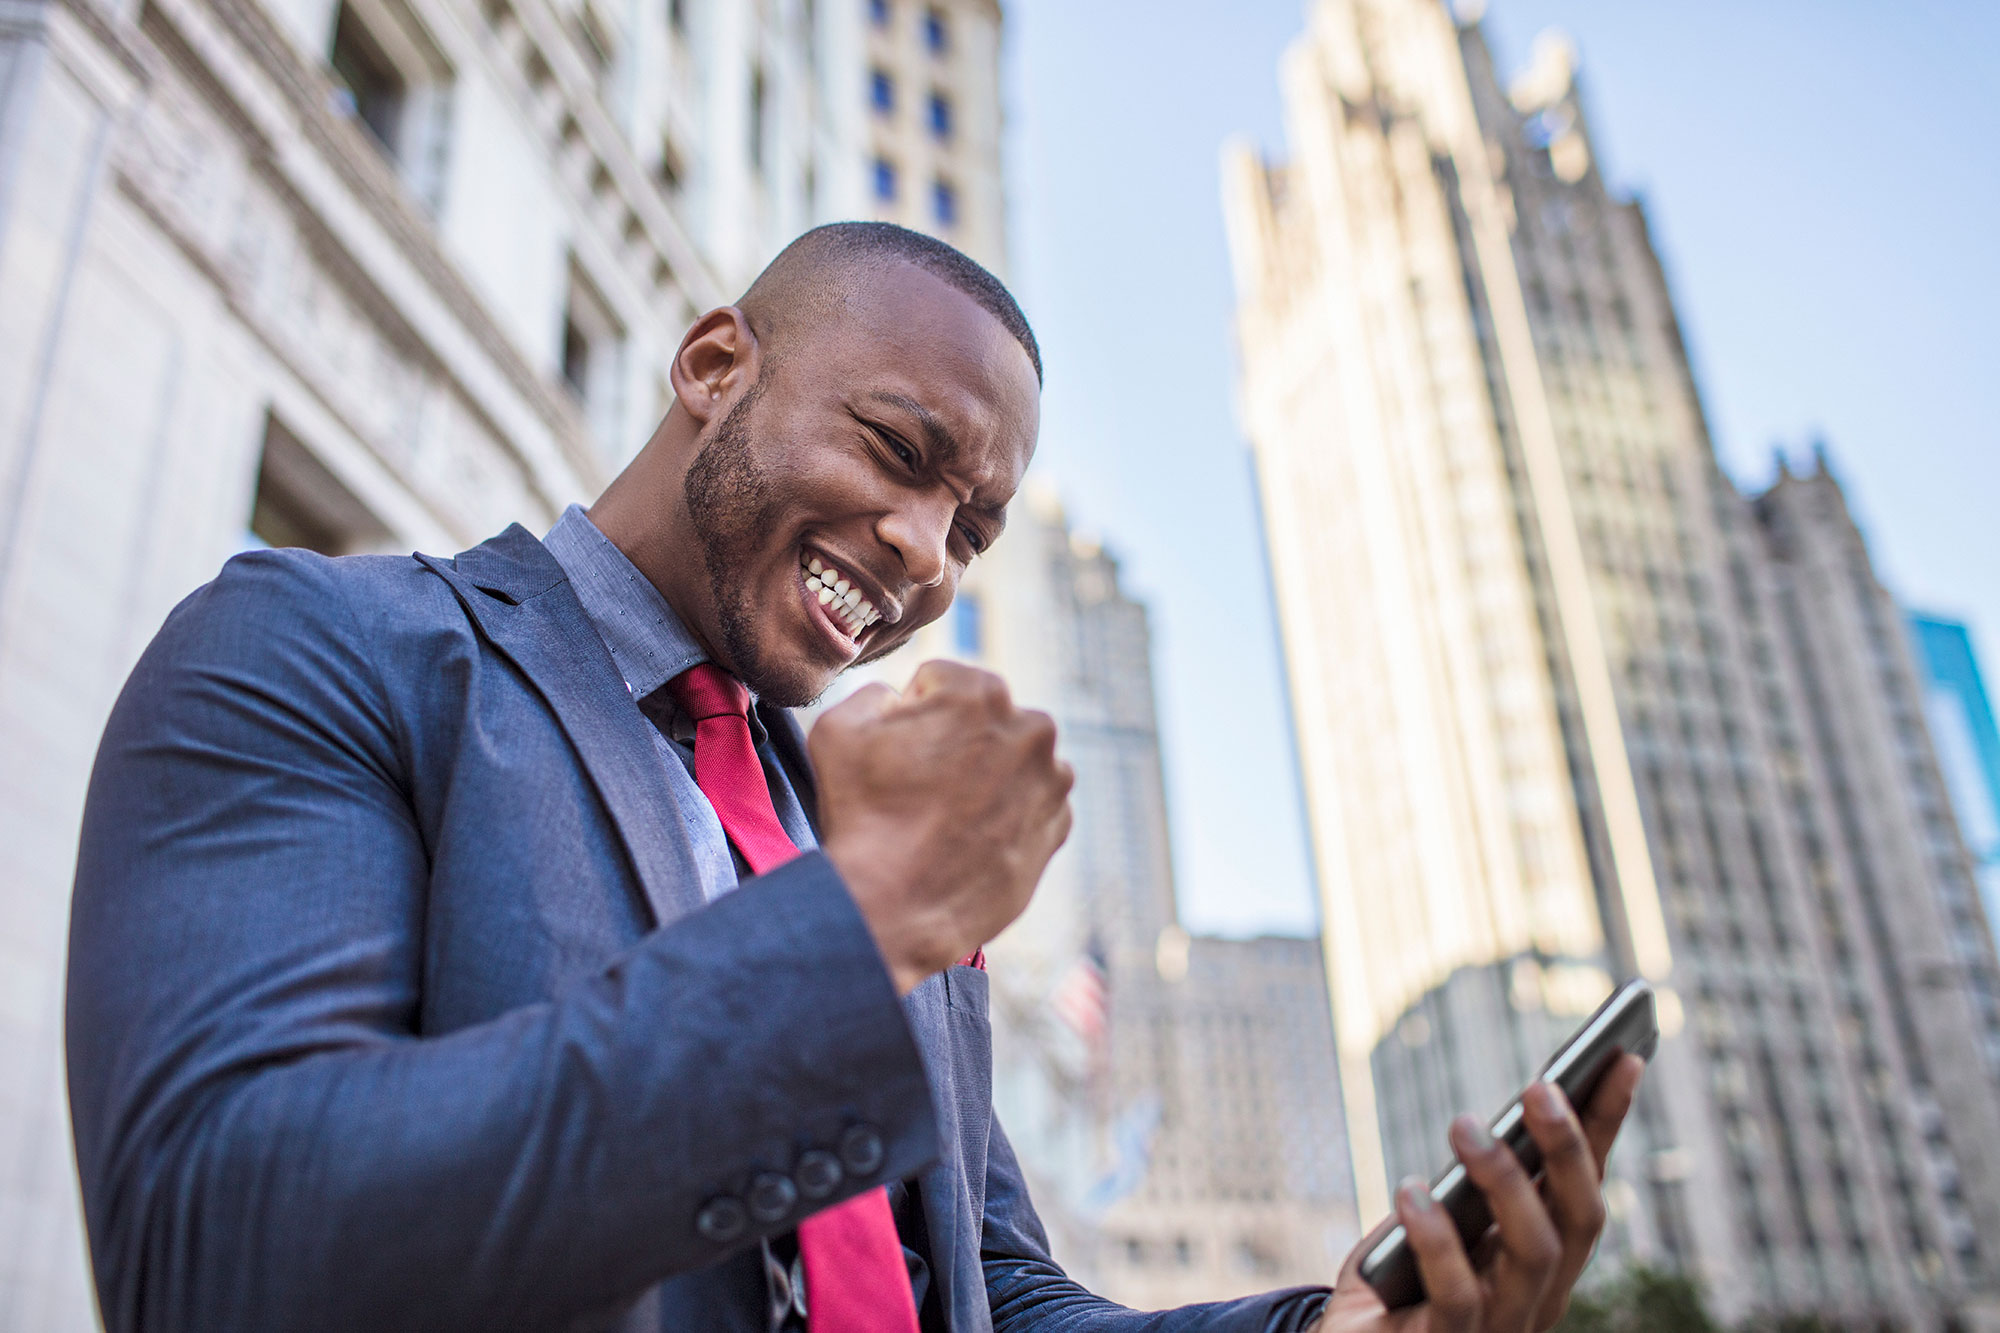 business-man-holding-mobile-phone-celebrating-smiling-fist-pump